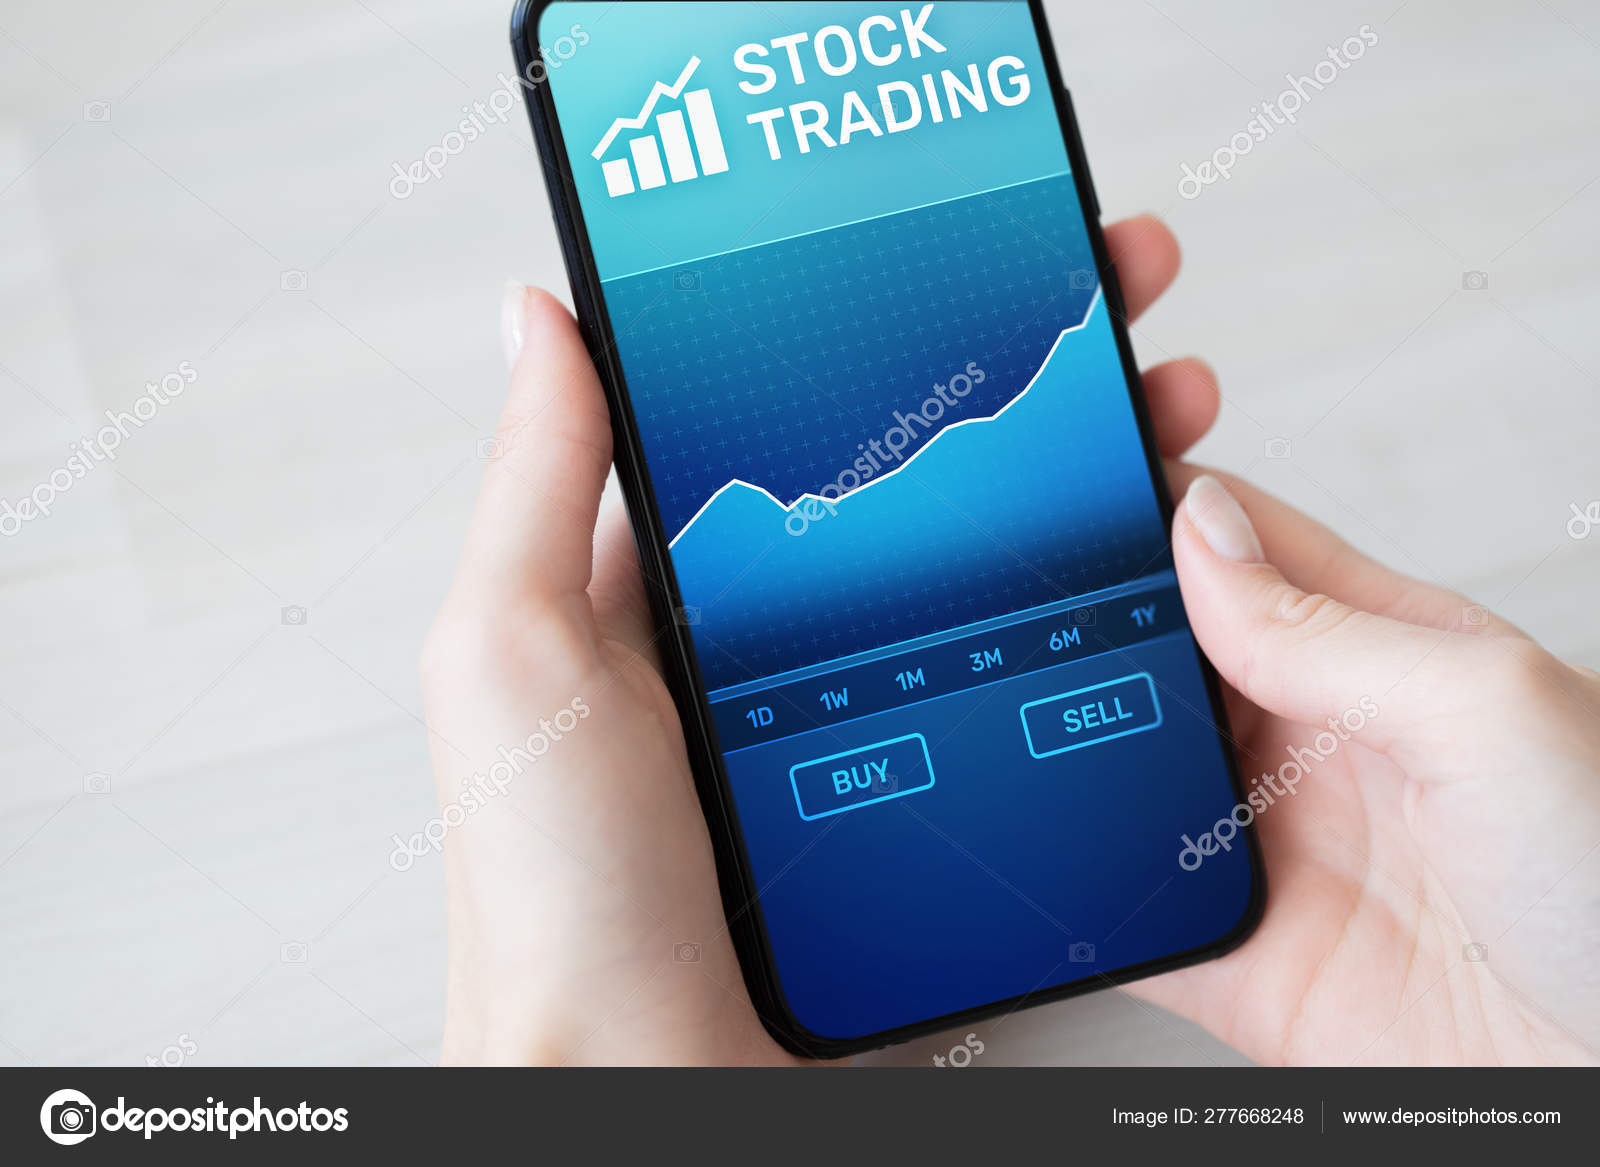 Mobile trading application with stock market chart on smartphone